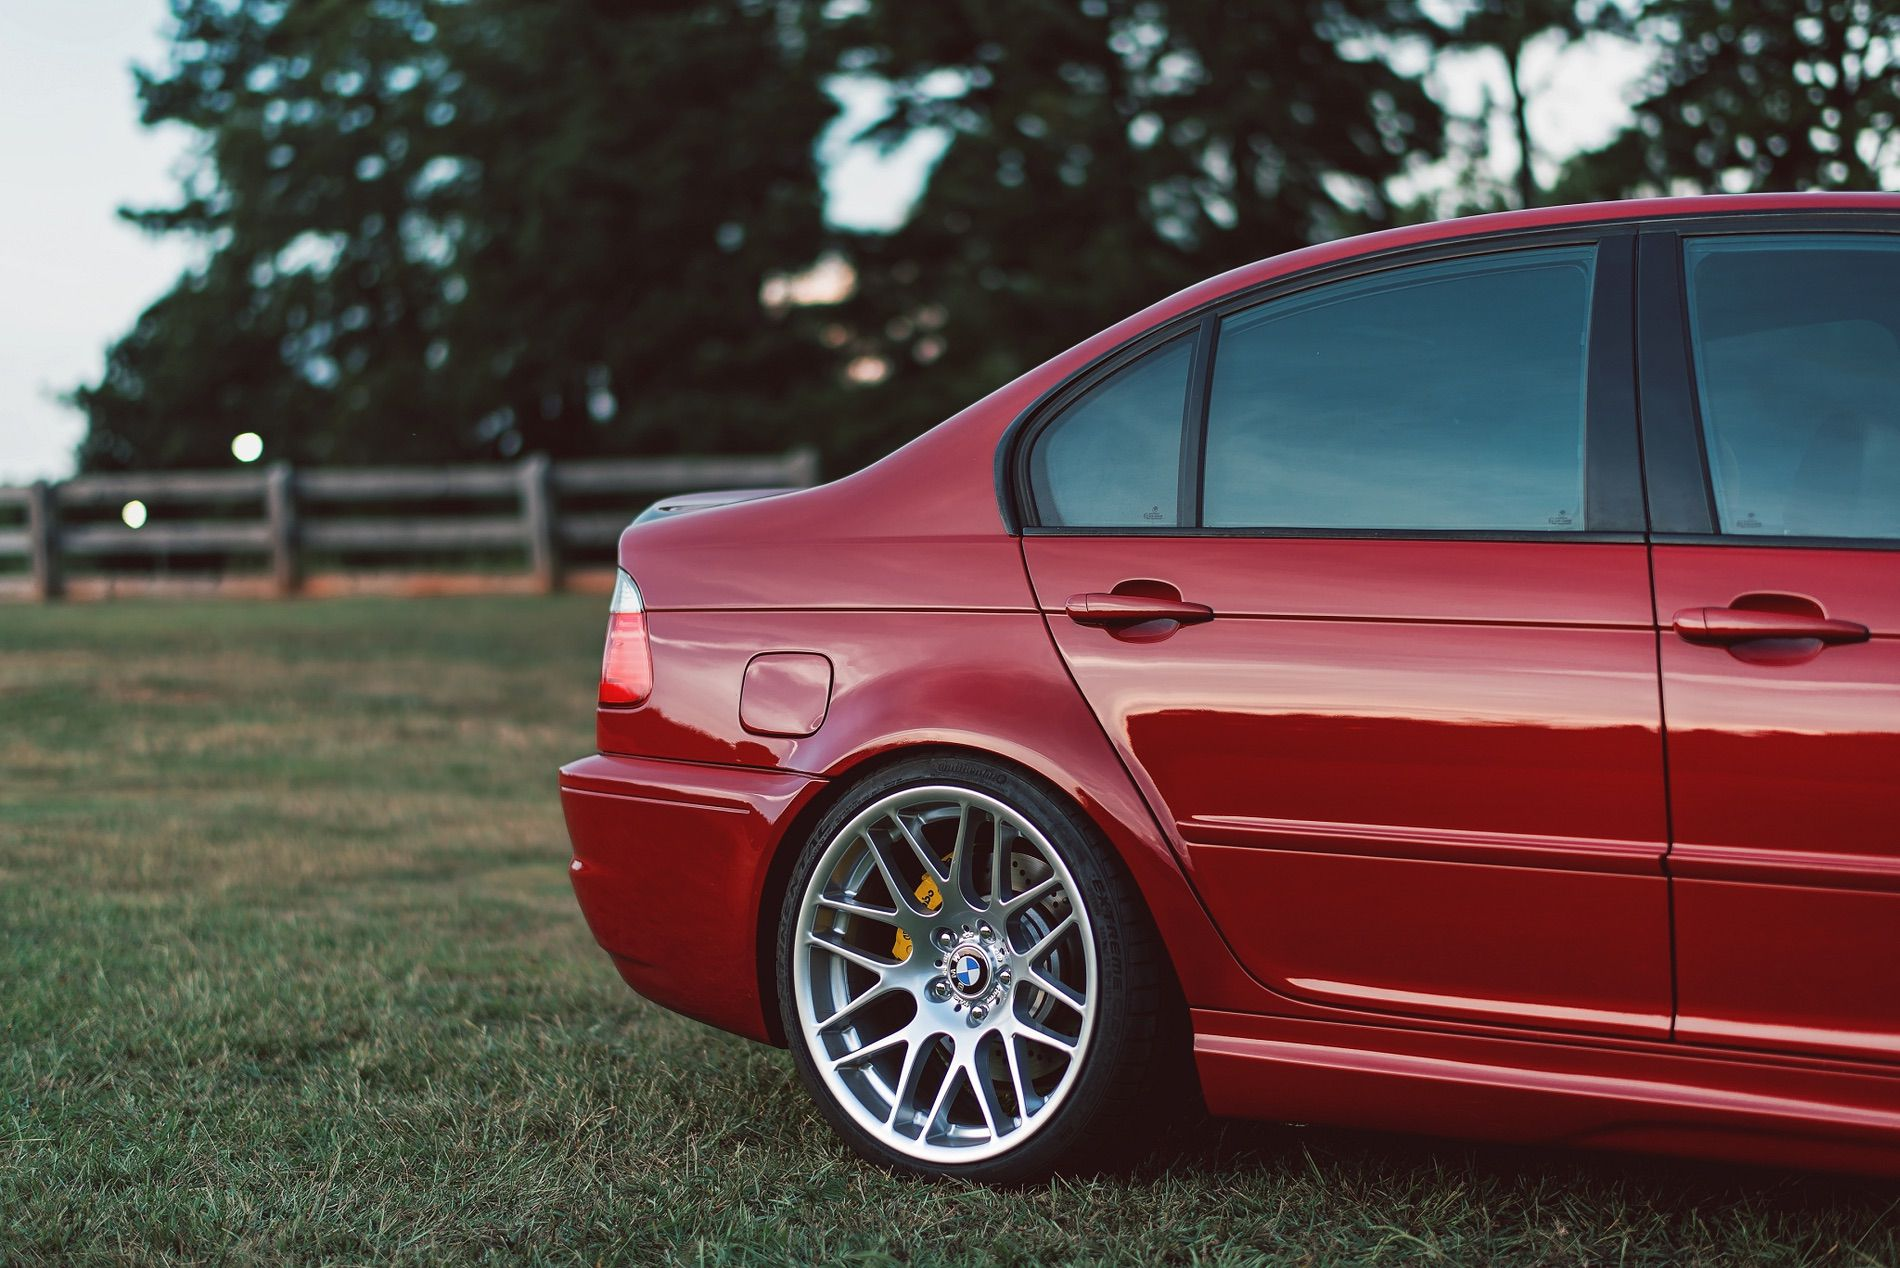 Reader's Corner: E46 330i ZHP converted to an E46 M3